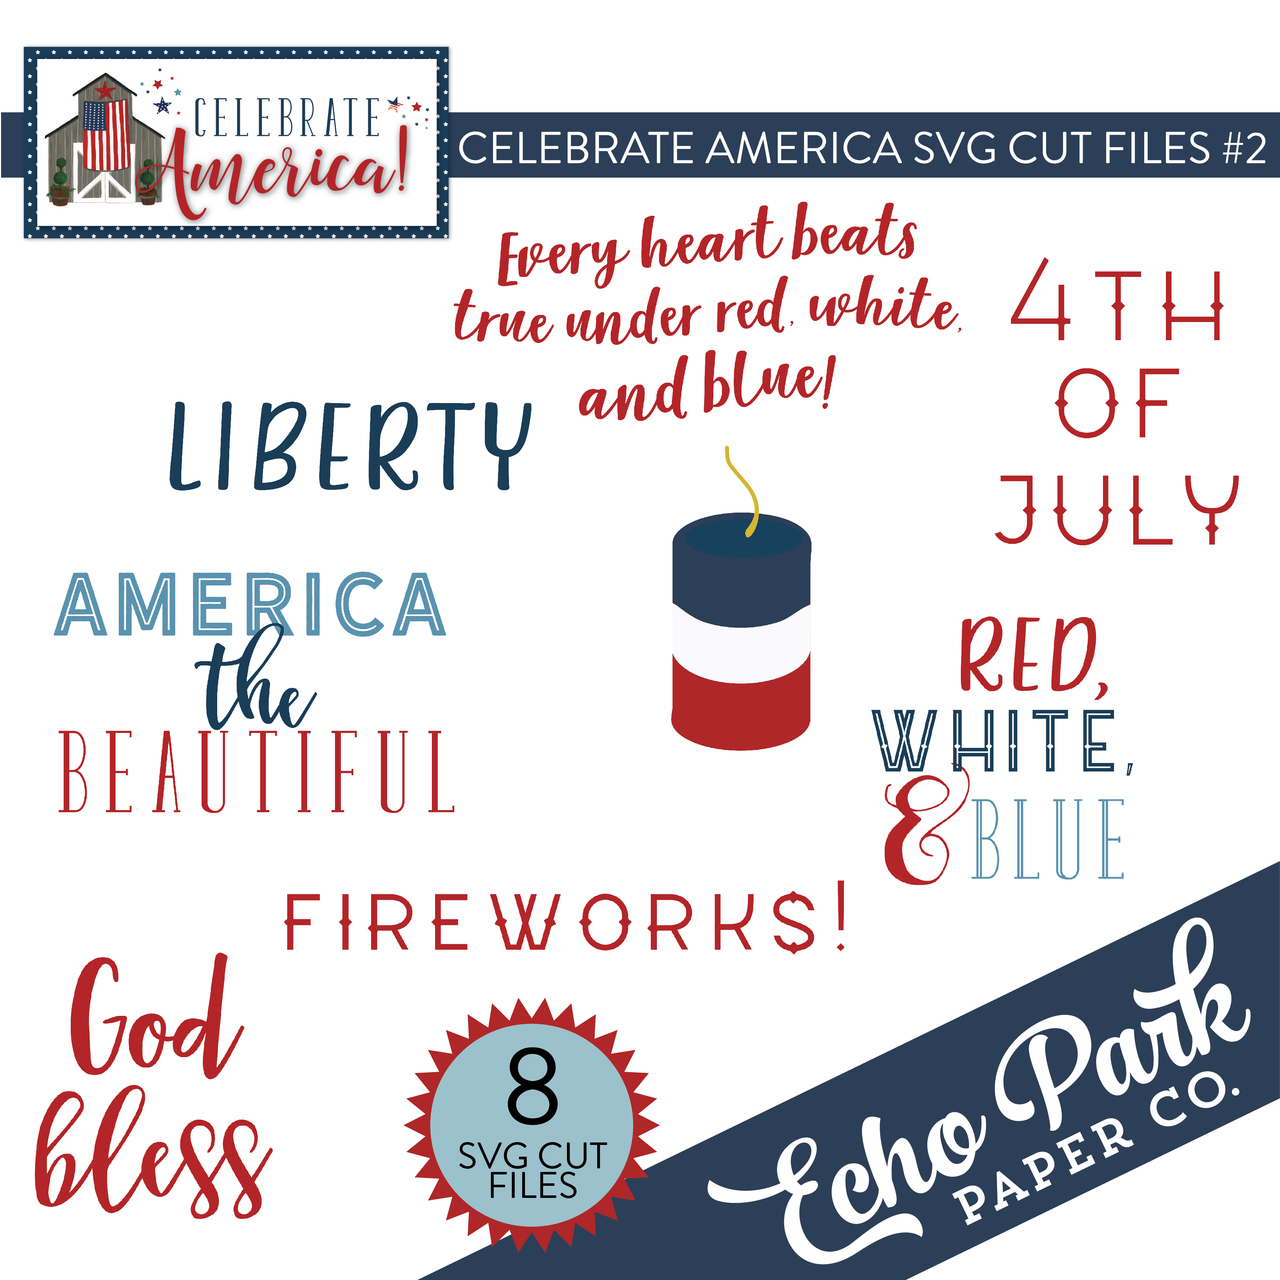 Celebrate America SVG Cut Files #2